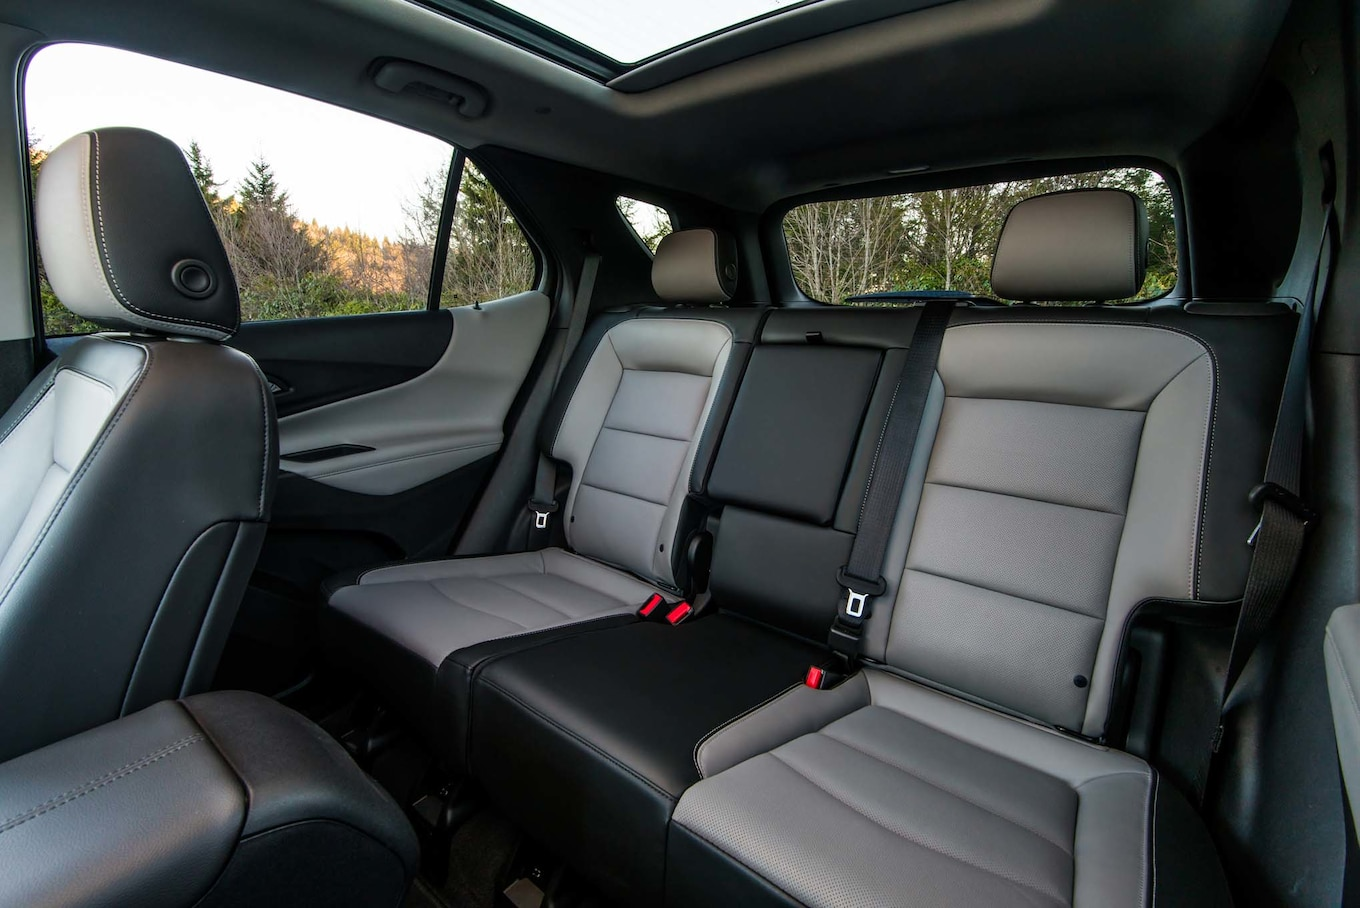 2018 Chevrolet Equinox Interior Seats Wallpaper